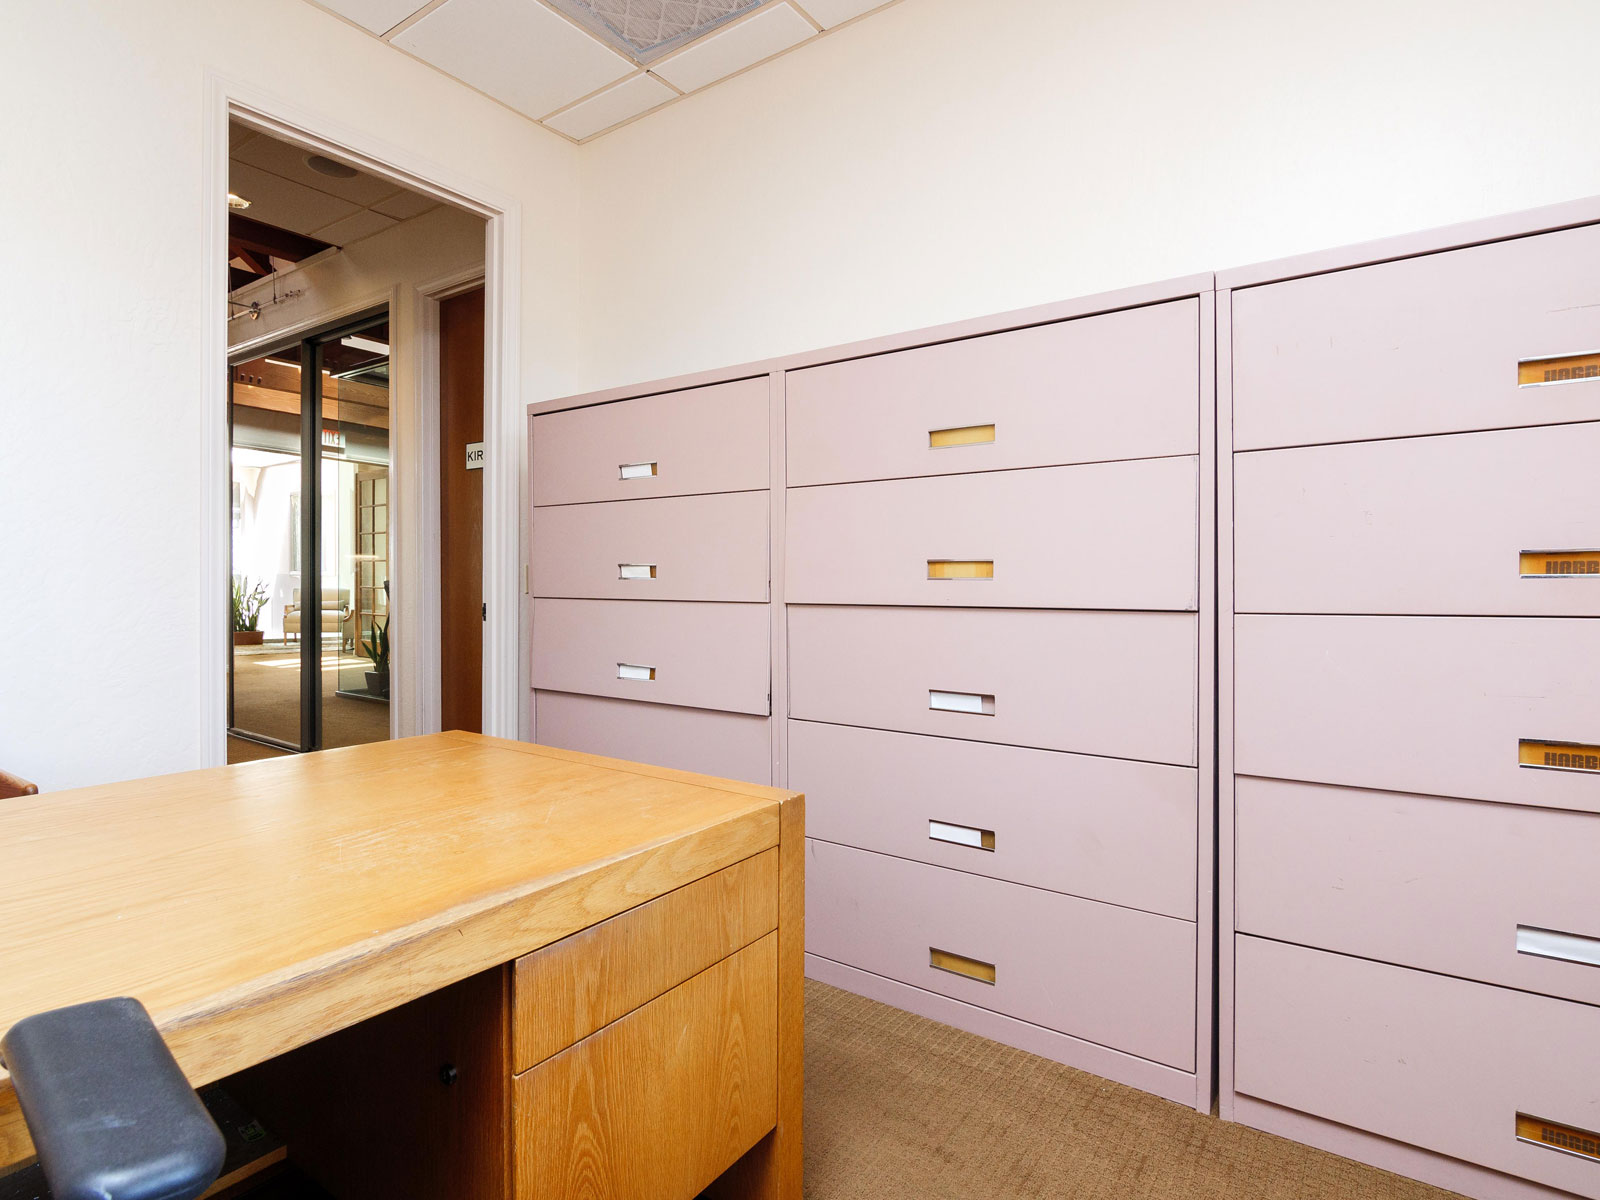 316-s-melrose-vista-ca-executive-office-for-lease-203